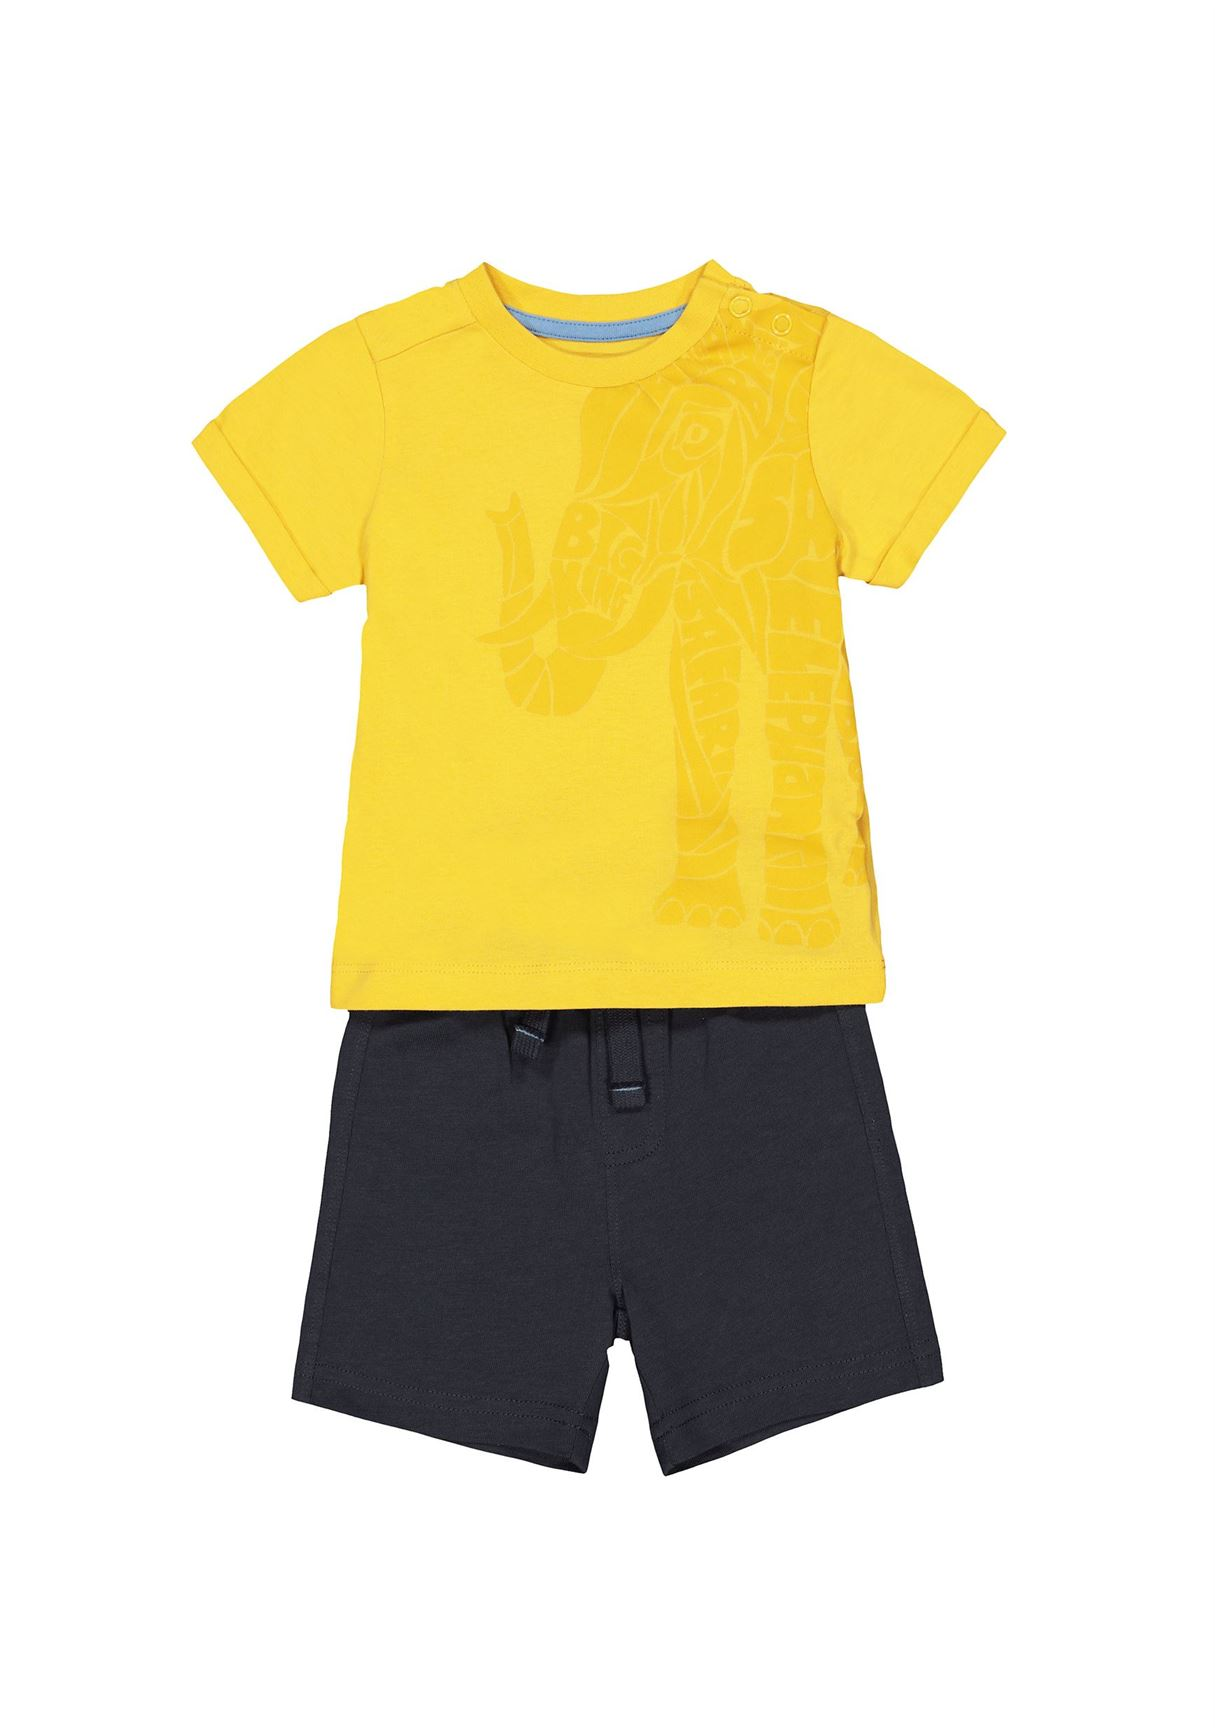 Mothercare Boys Multicolor Solid T-shirt & Shorts Set